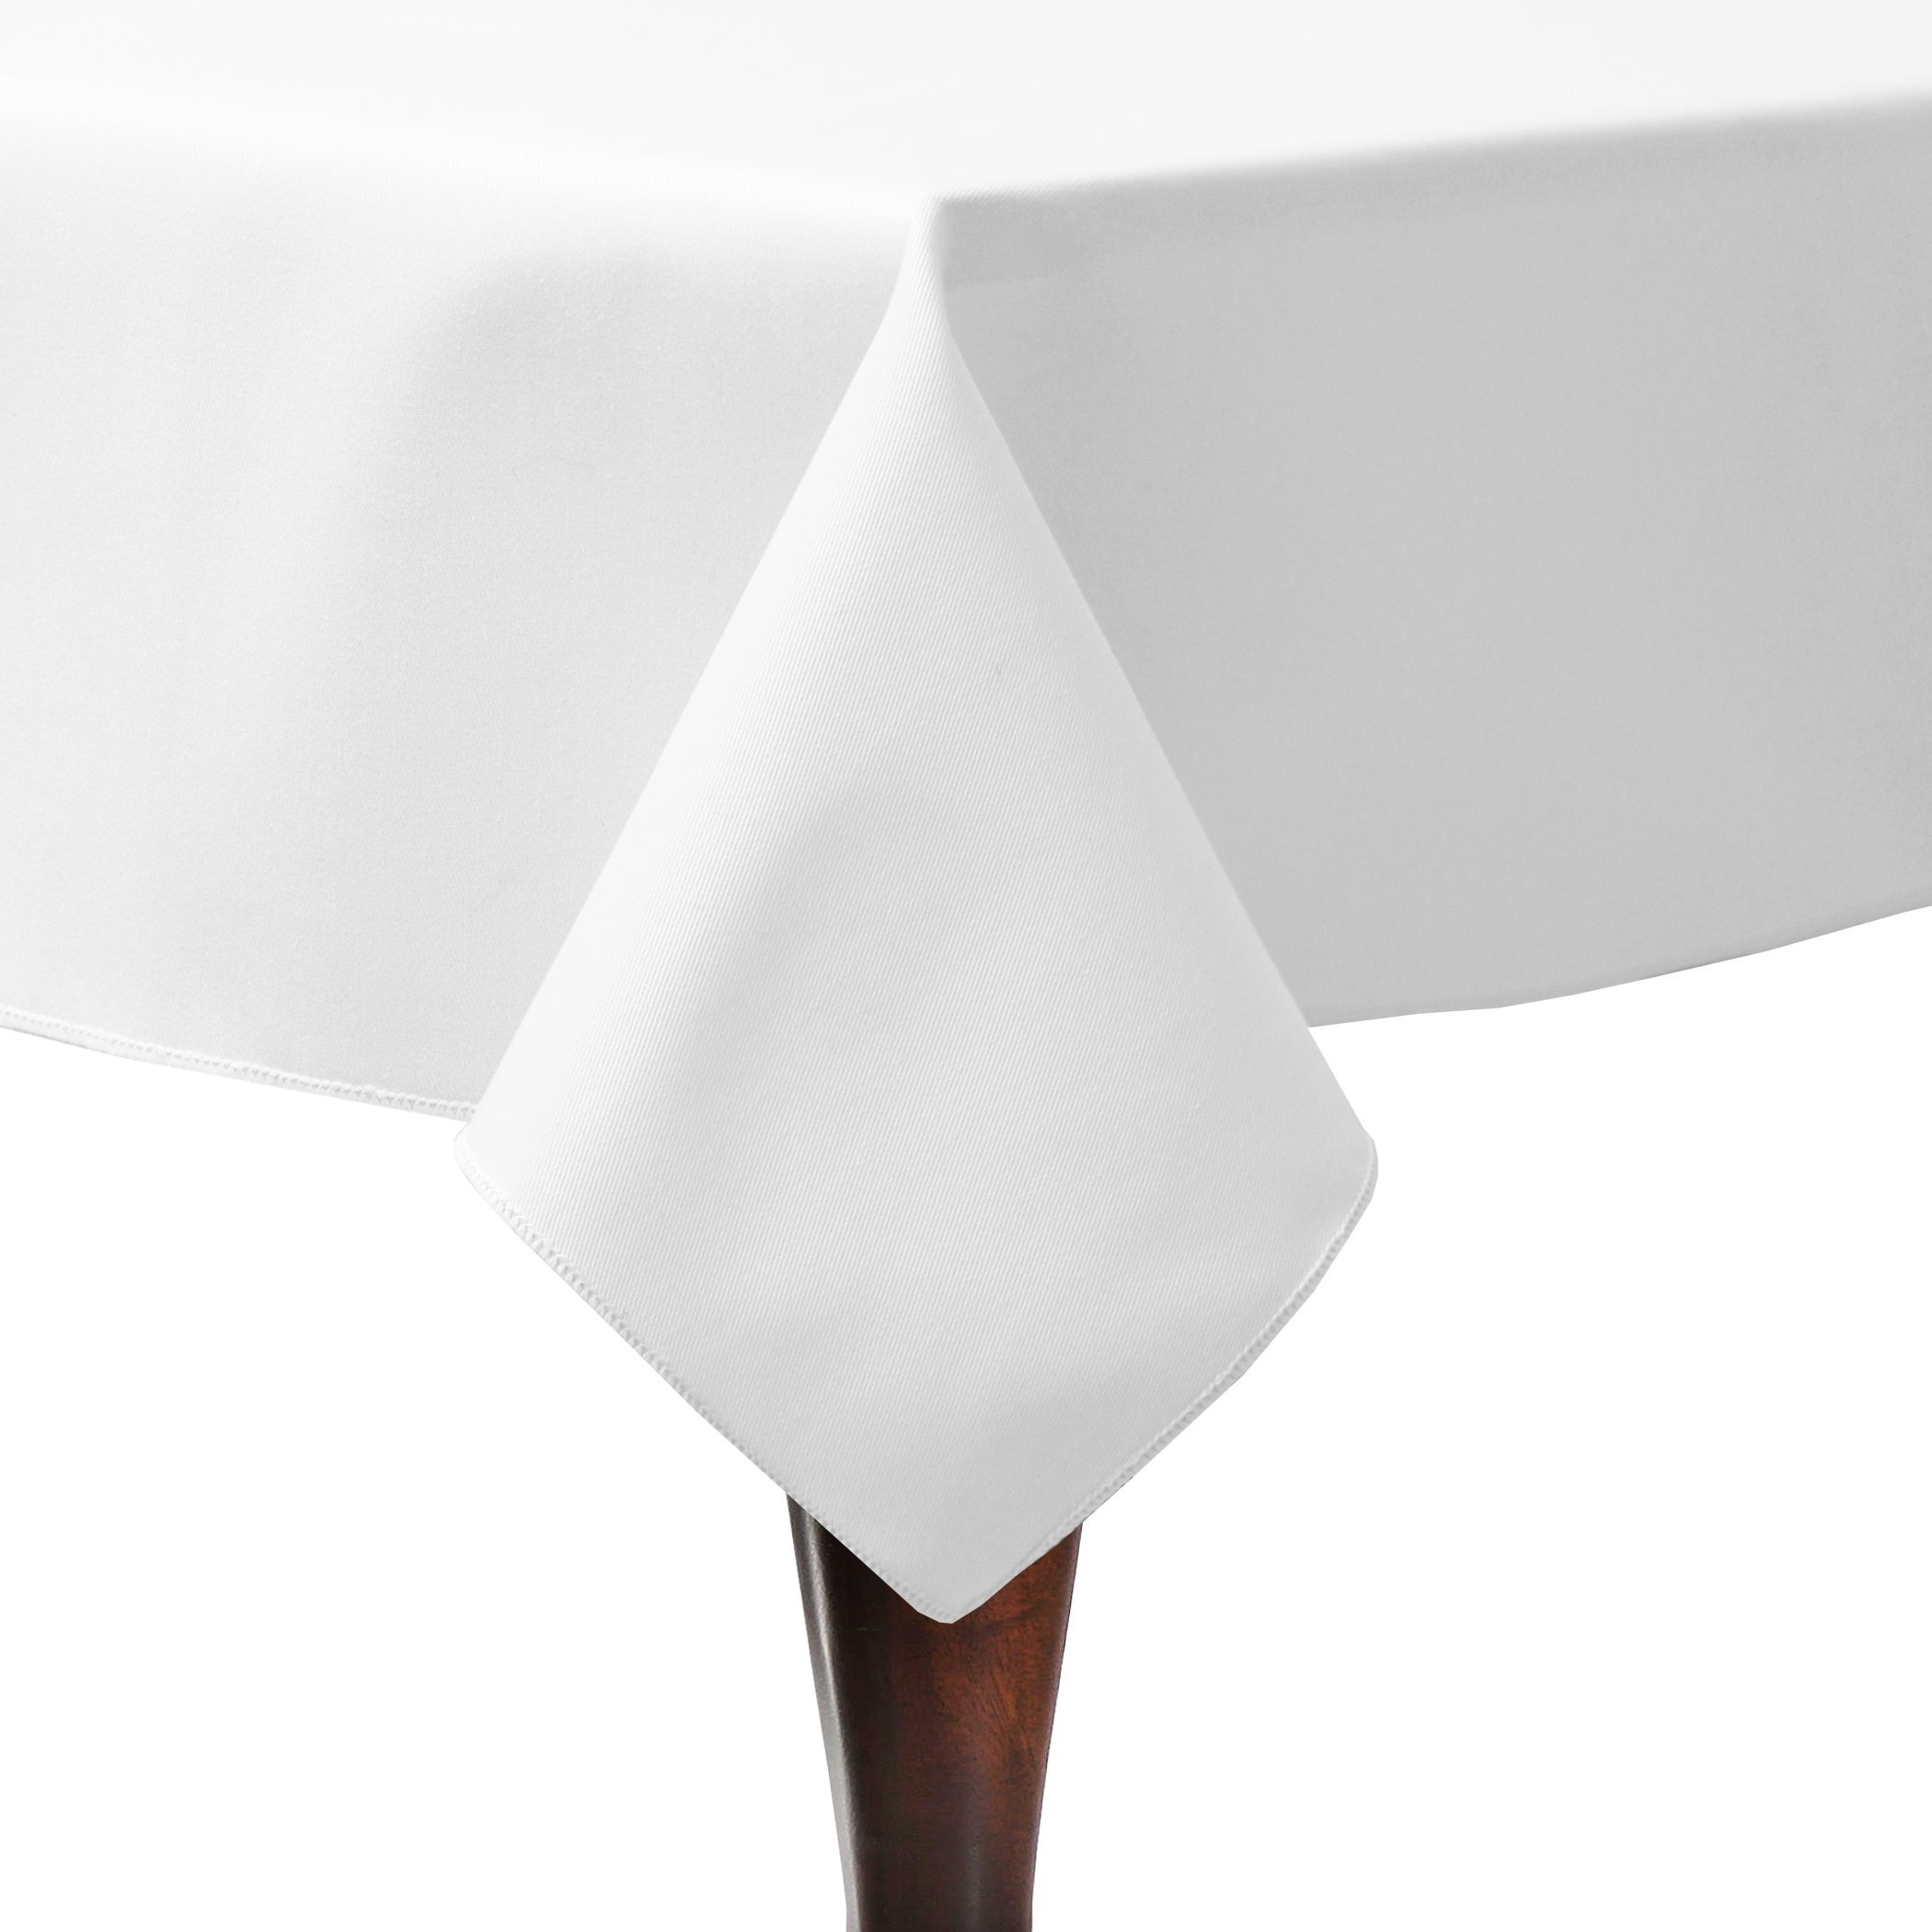 Ultimate Textile (3 Pack) Poly-cotton Twill 60 x 90-Inch Rectangular Tablecloth - for Restaurant and Catering, Hotel or Home Dining use, White by Ultimate Textile (Image #1)